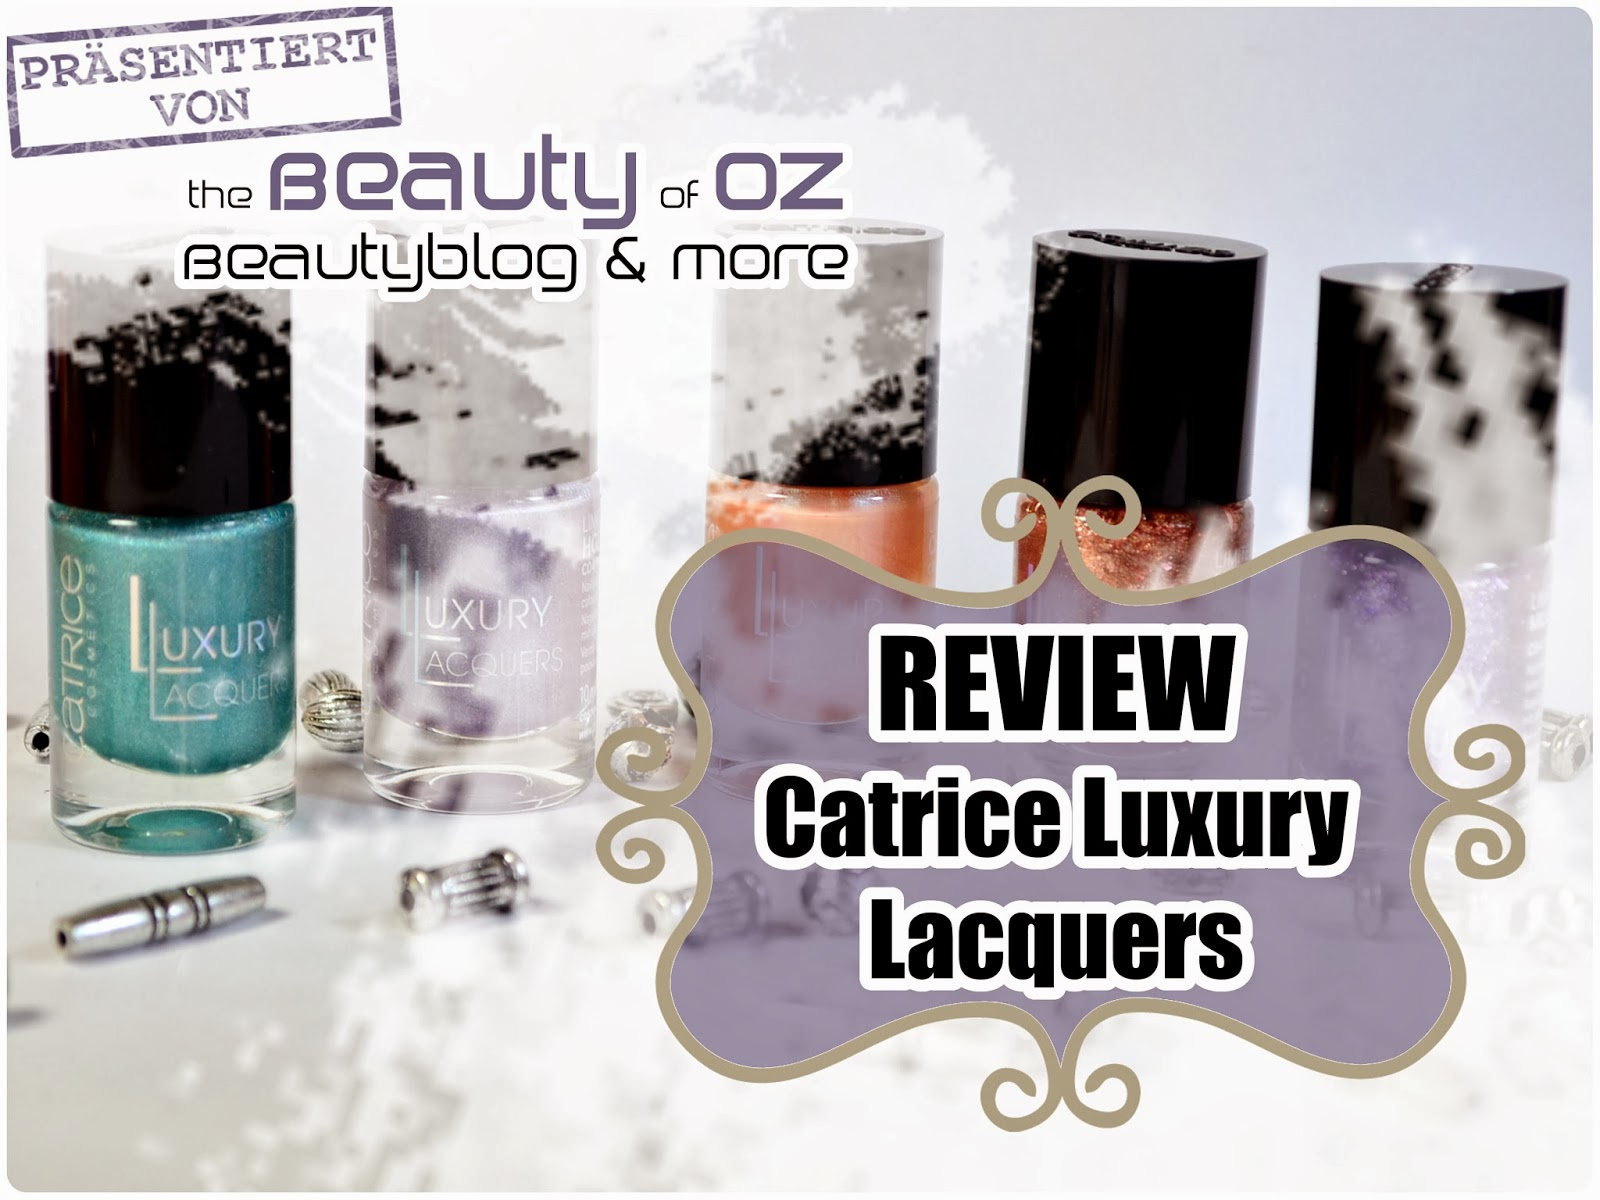 Catrice Luxury Lacquers Review + Swatches